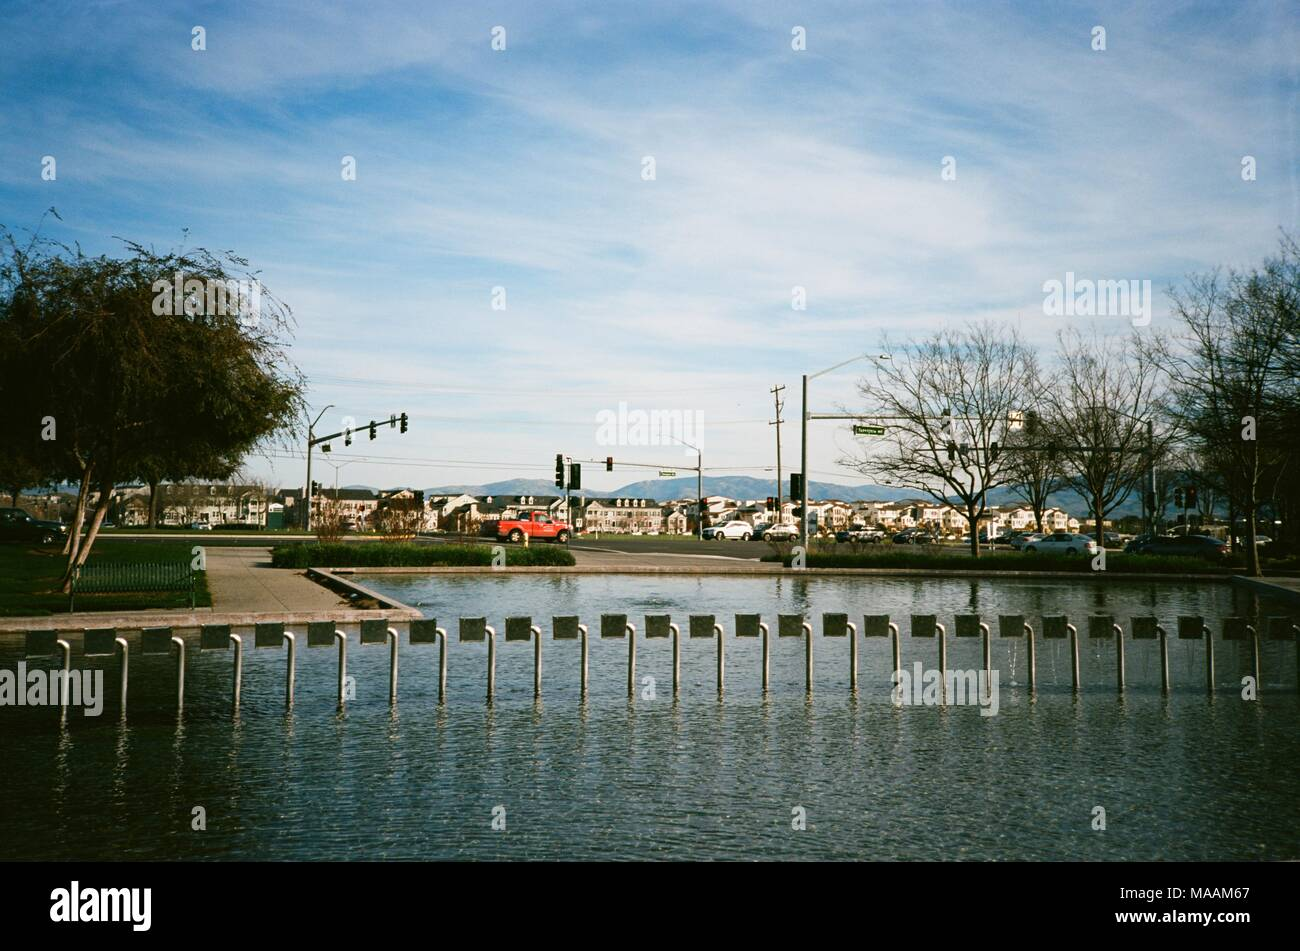 Elaborate fountain in Emerald Park, the main public park in Dublin, California, February, 2018. According to 2014 data, Dublin is among the top three fastest growing cities in the state of California. () - Stock Image